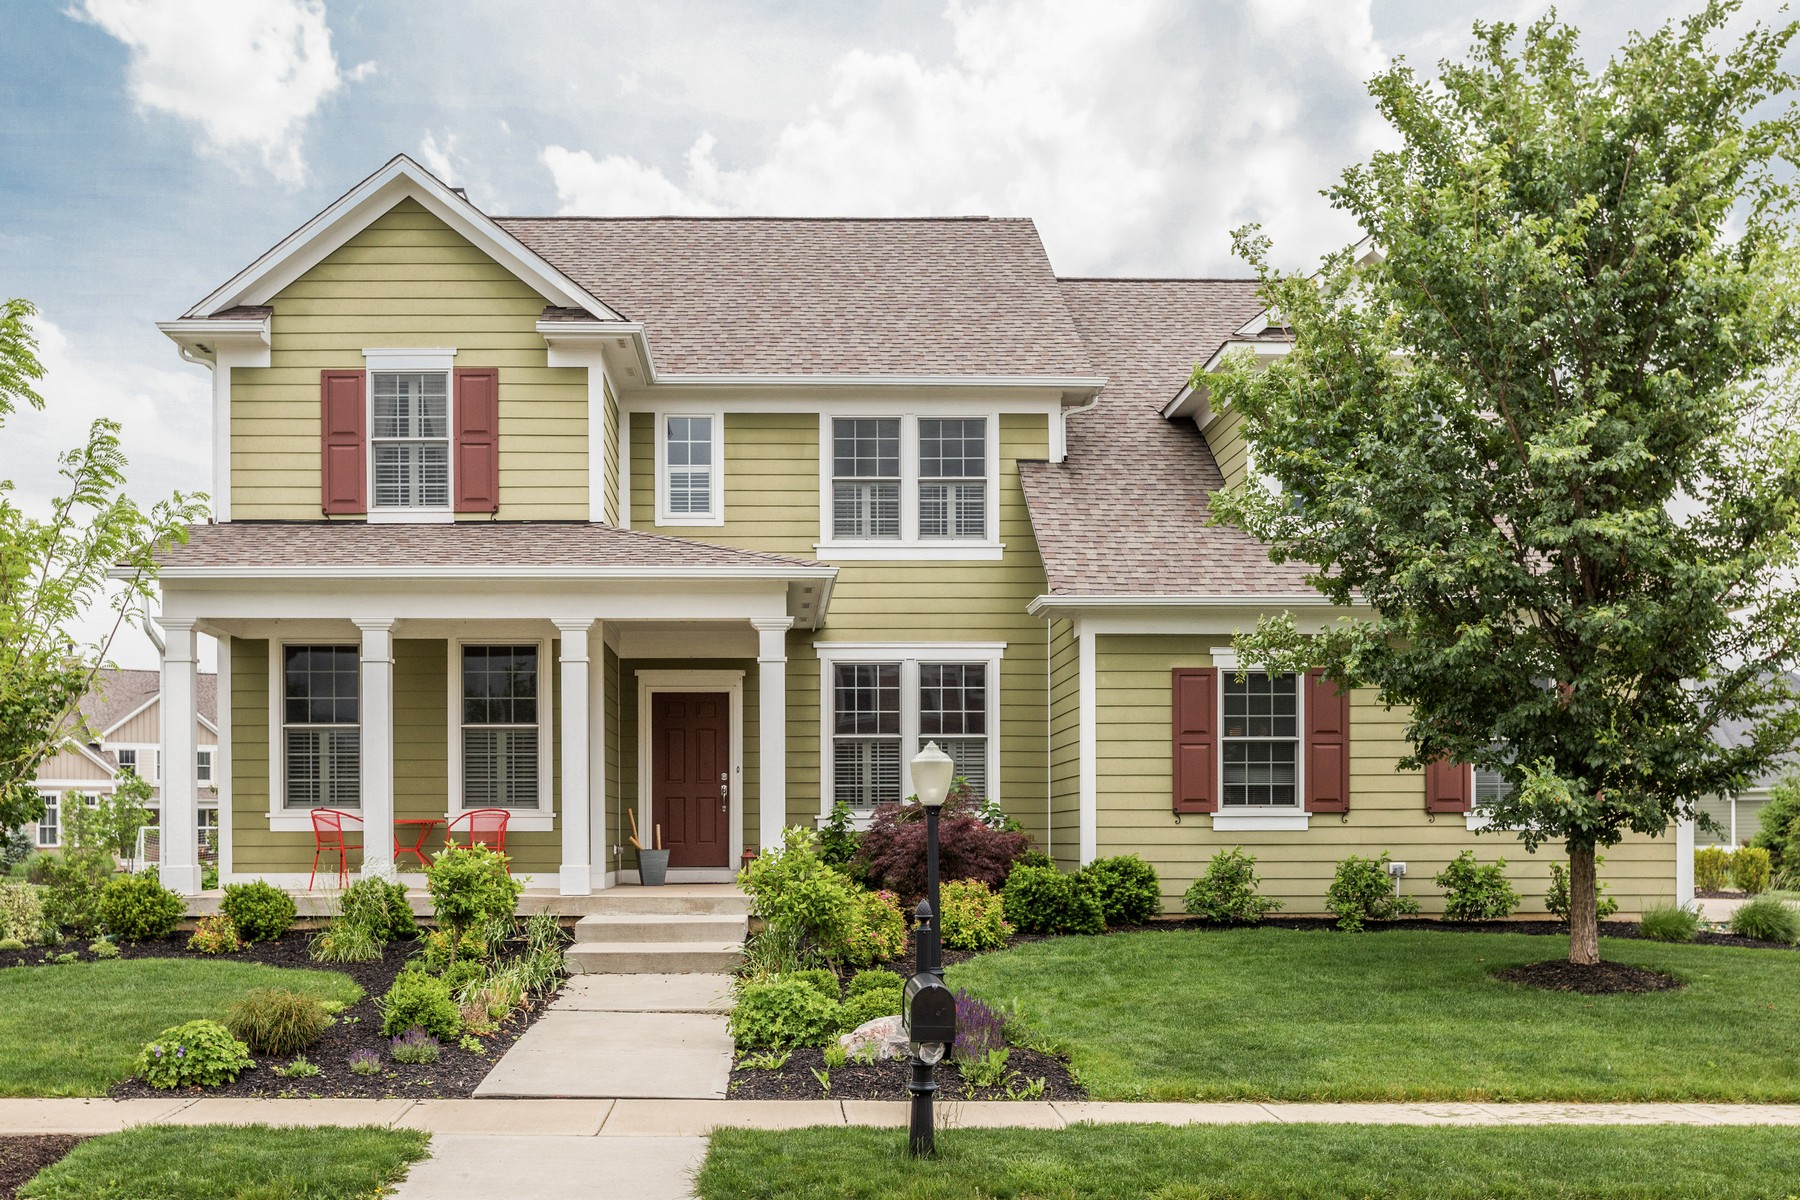 Single Family Home for Sale at Lovely Village of WestClay Home 13265 Birkenhead Street Carmel, Indiana 46032 United States